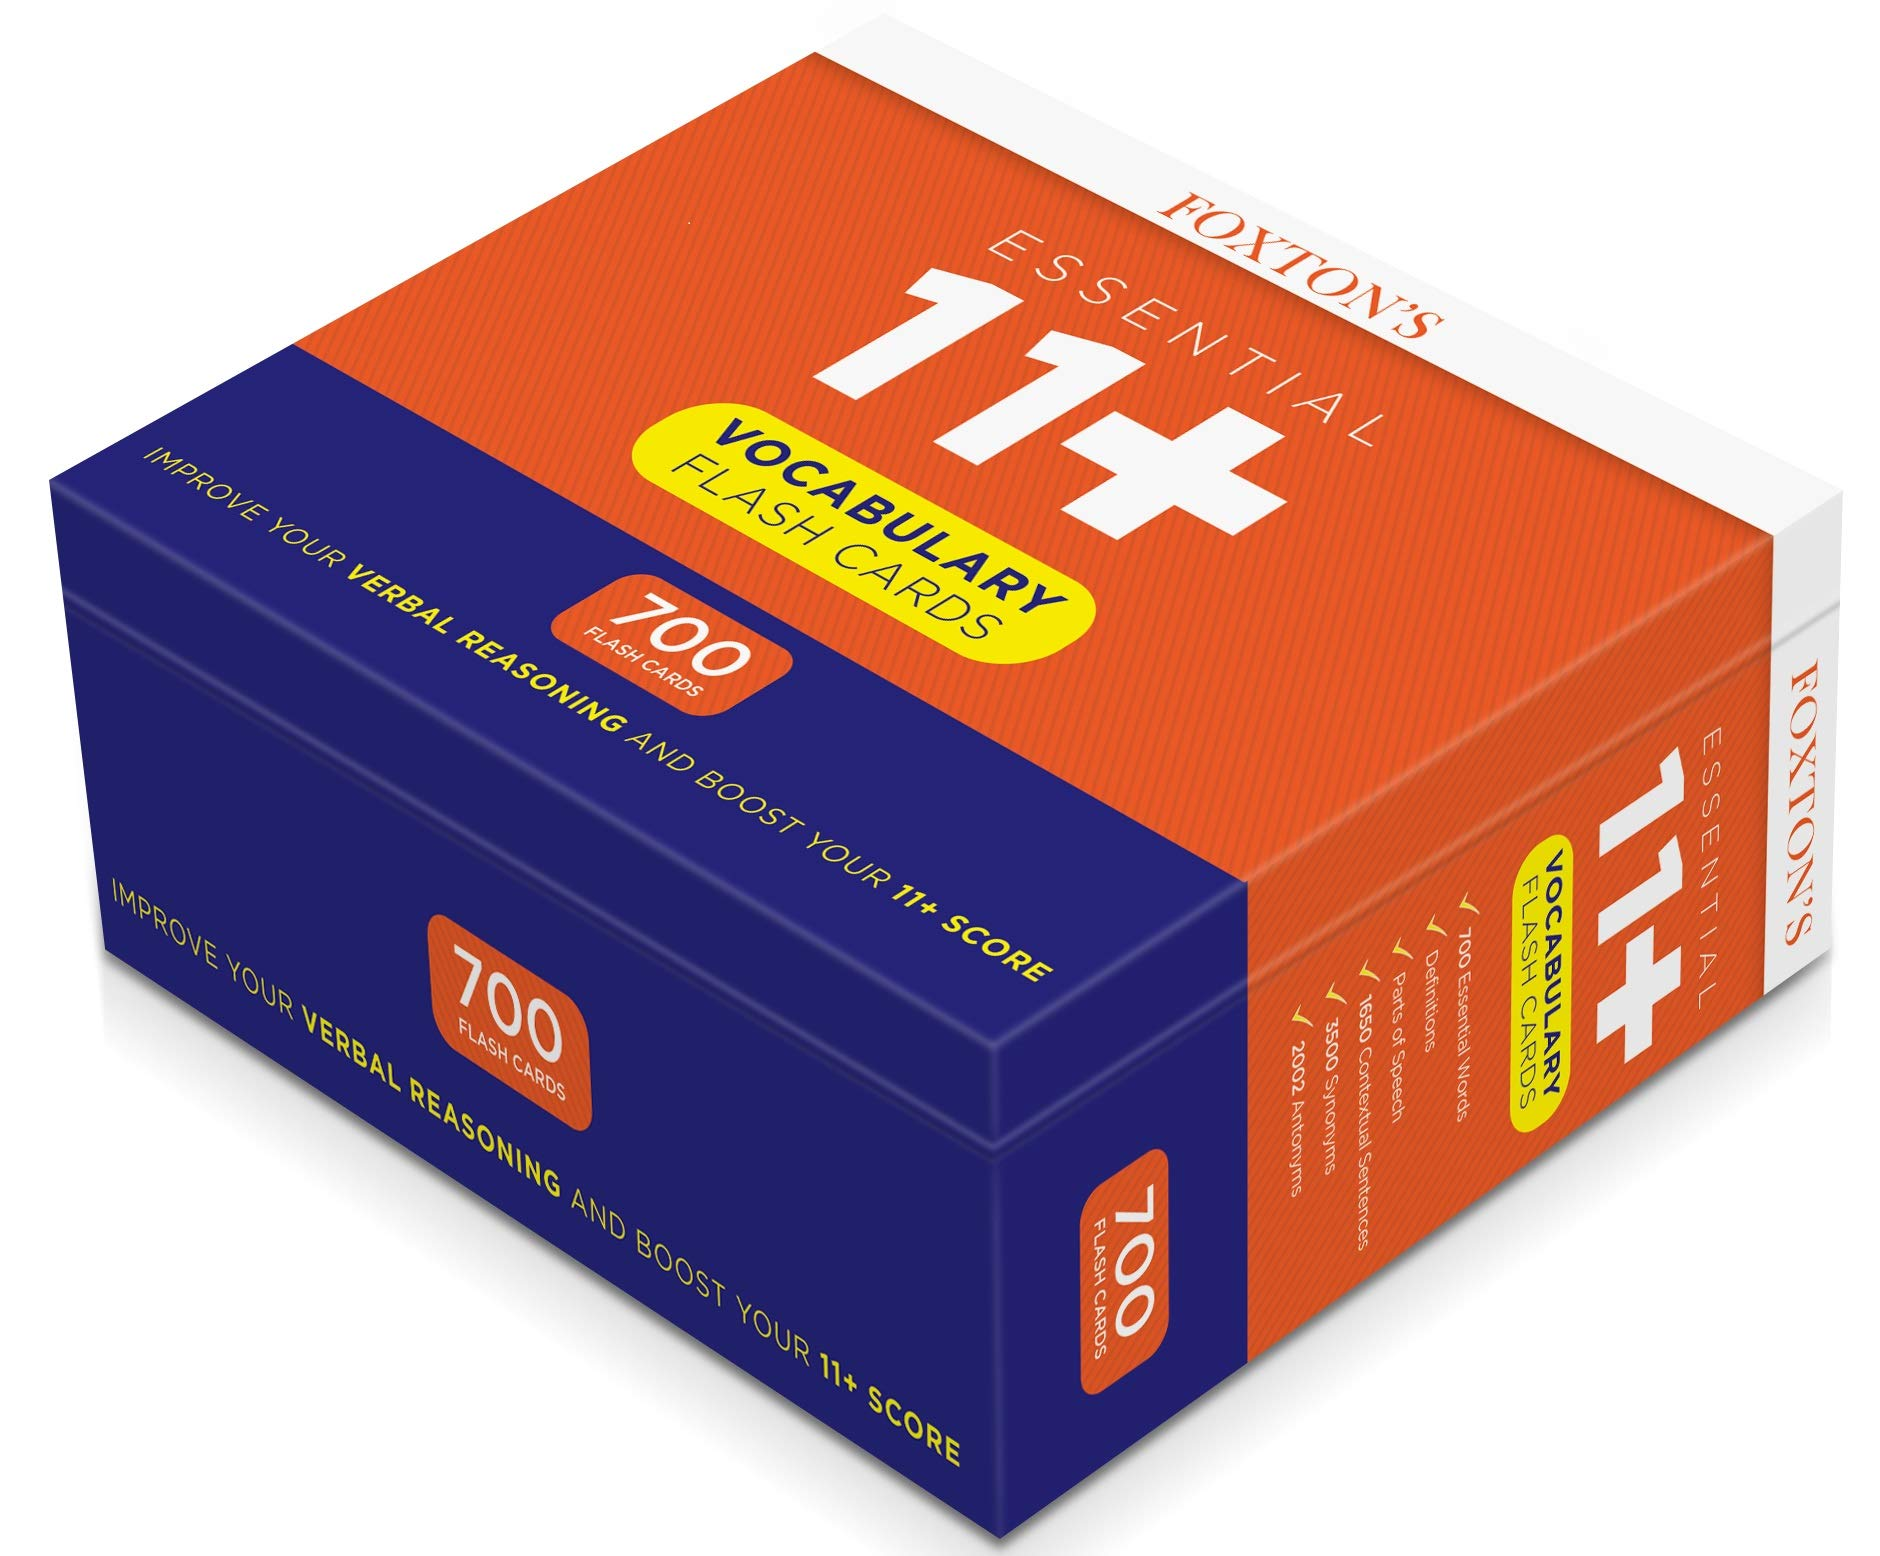 Foxton's 700 Vocabulary Flash Cards for the 11 Plus Exam with